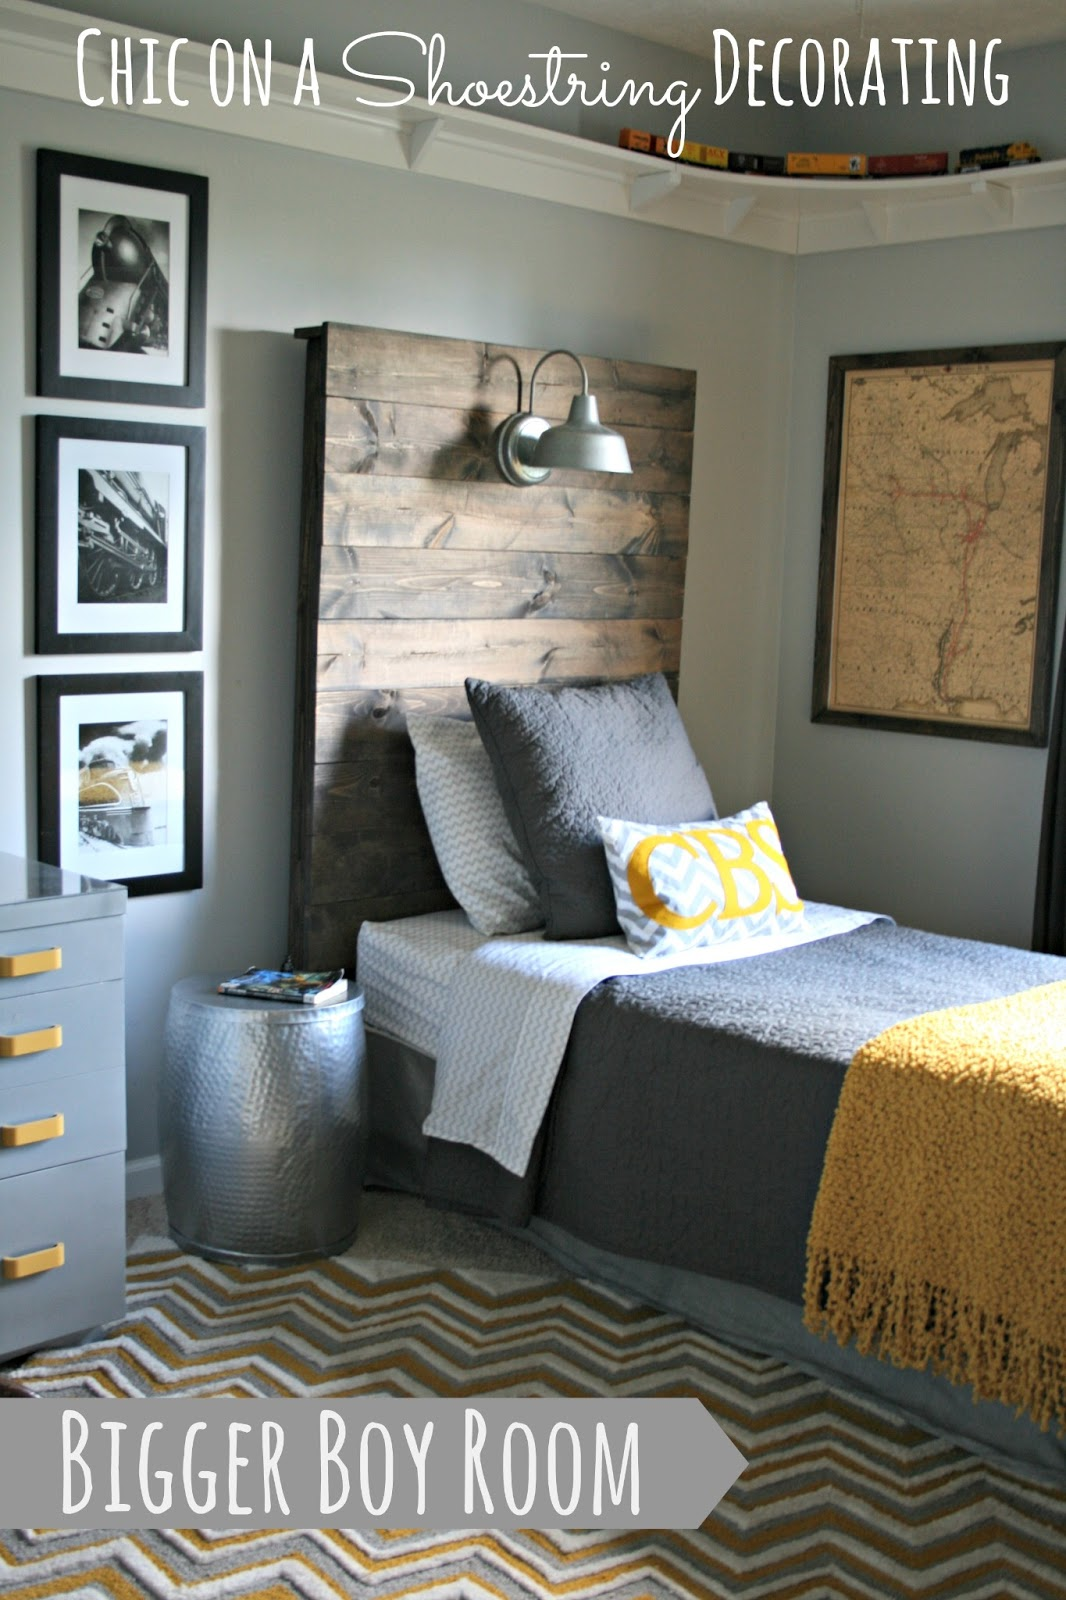 Chic on a shoestring decorating bigger boy room reveal for Room decor for 11 year old boy